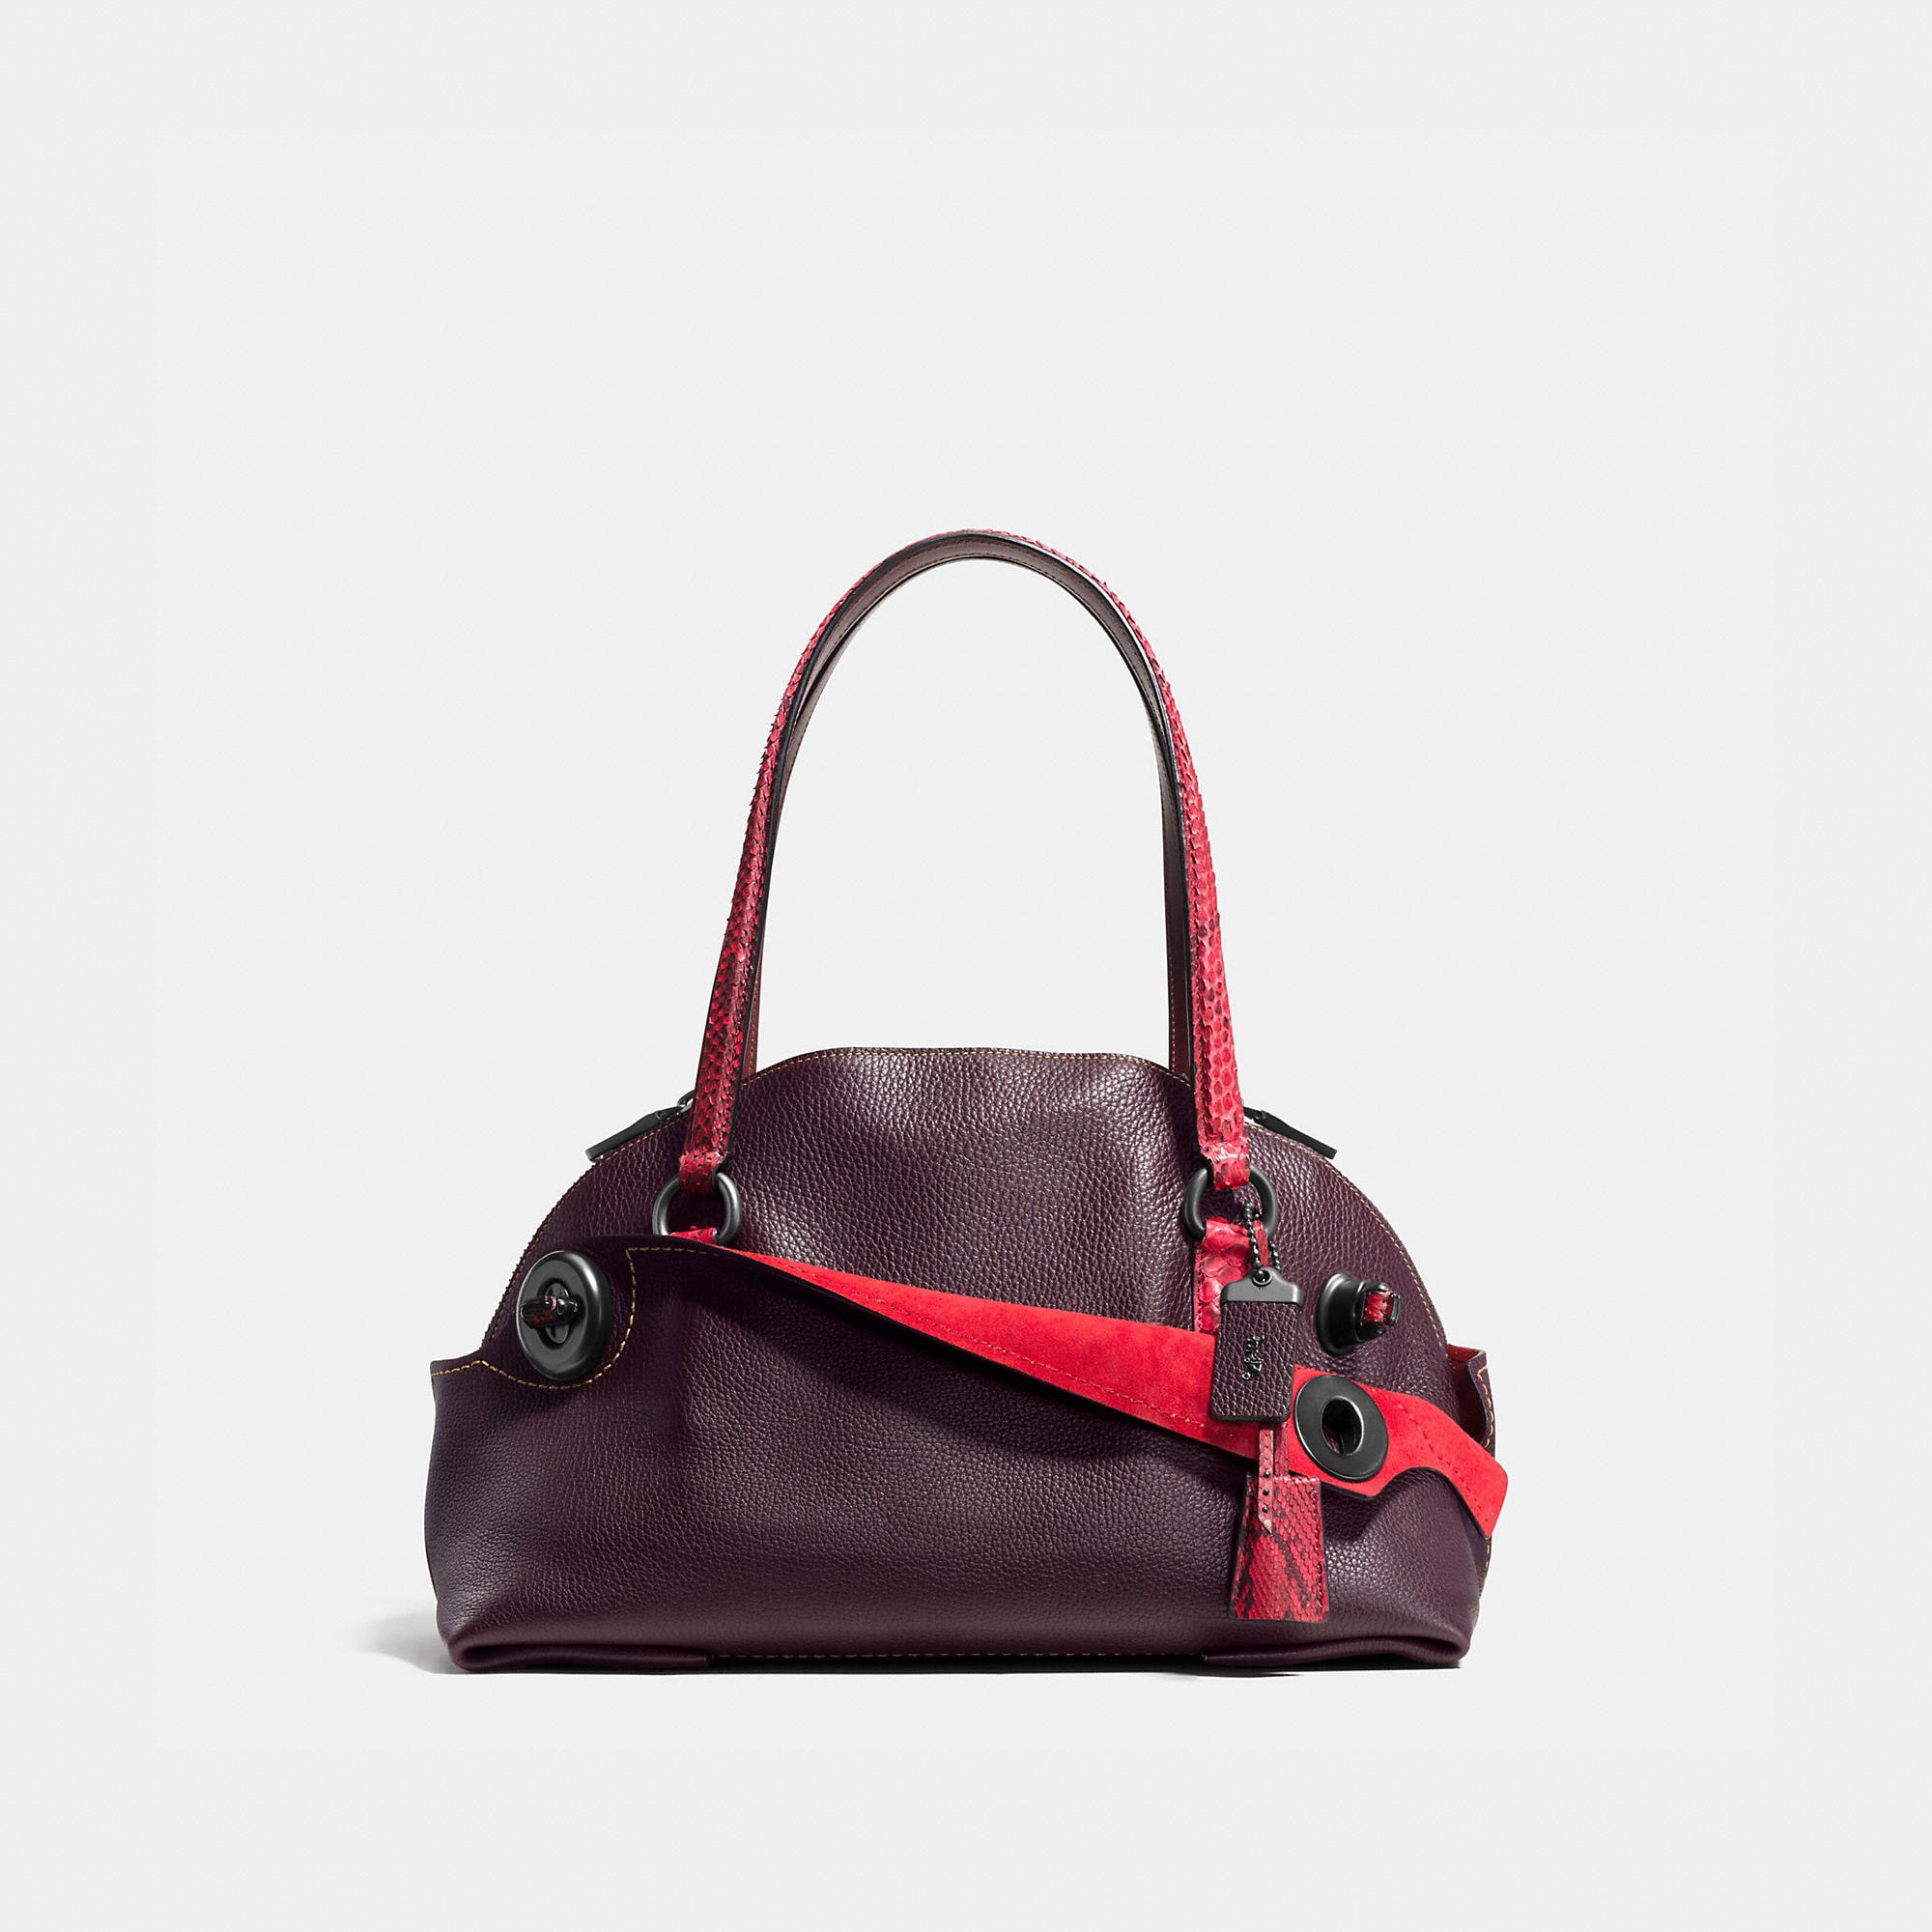 Coach Outlaw Satchel In Colorblock Python